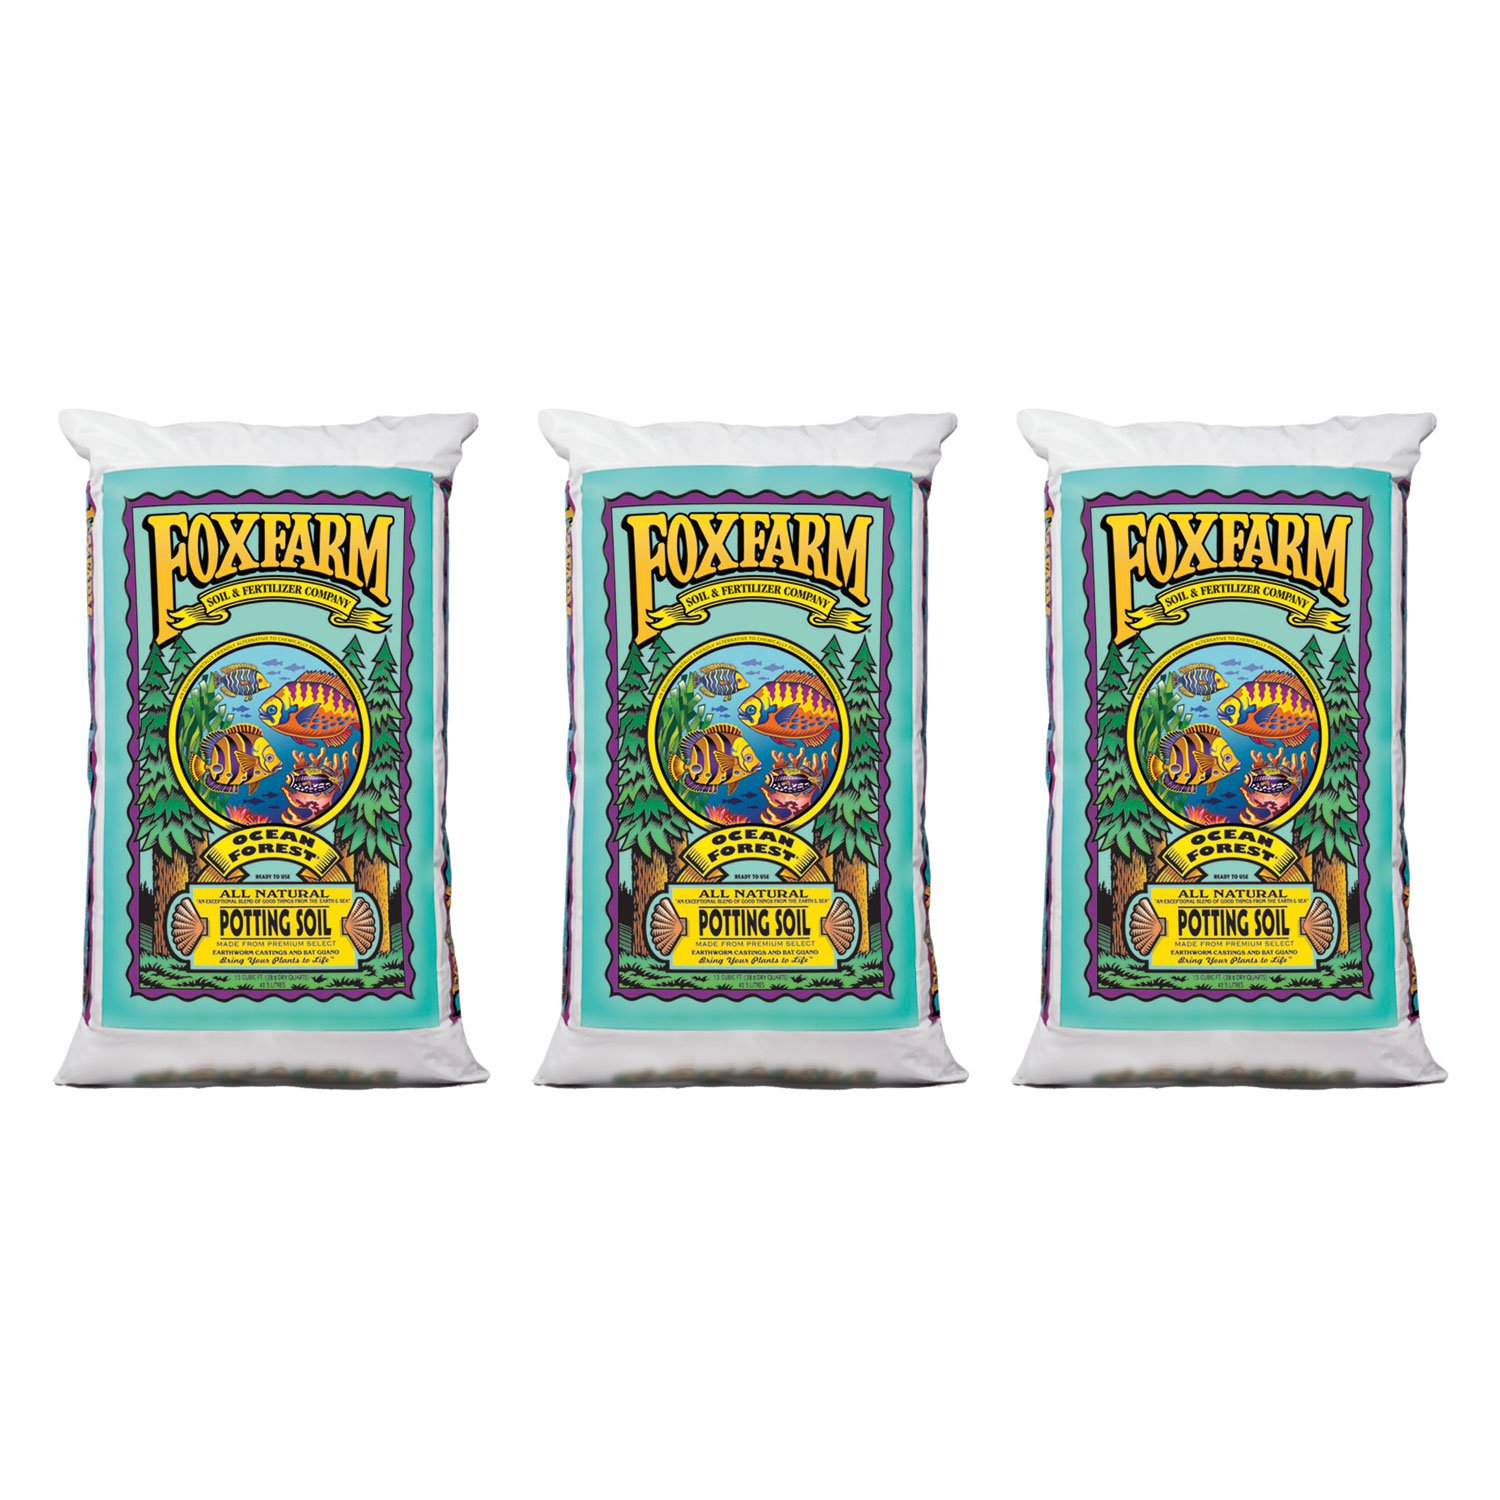 FoxFarm FX14000 Ocean Forest Plant Garden Potting Soil Mix, 40 Pounds (3 Pack)